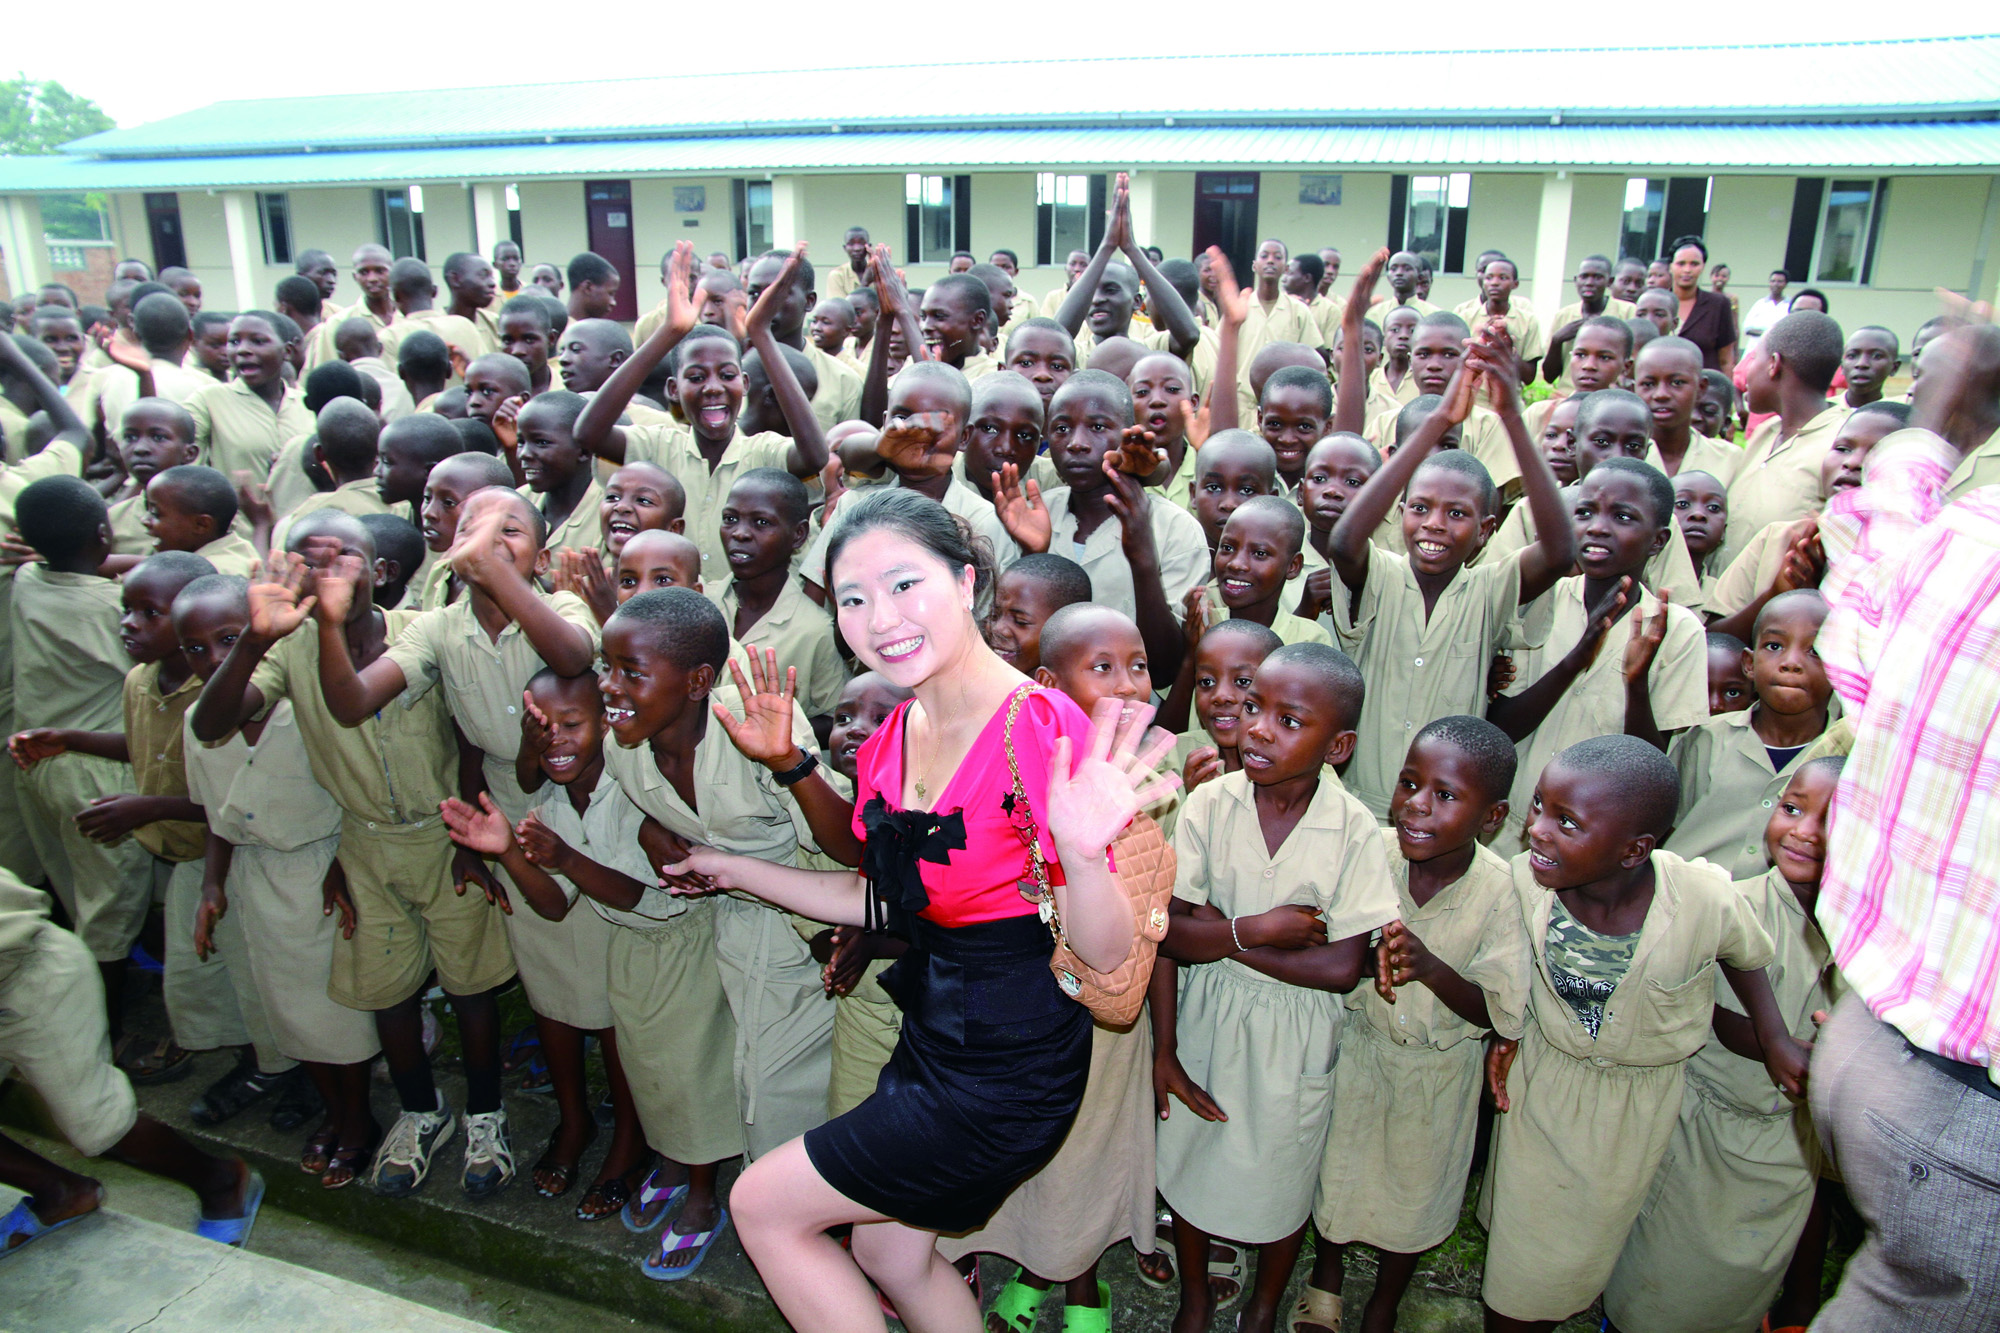 Ms. Xingyu Lu visiting students in Africa